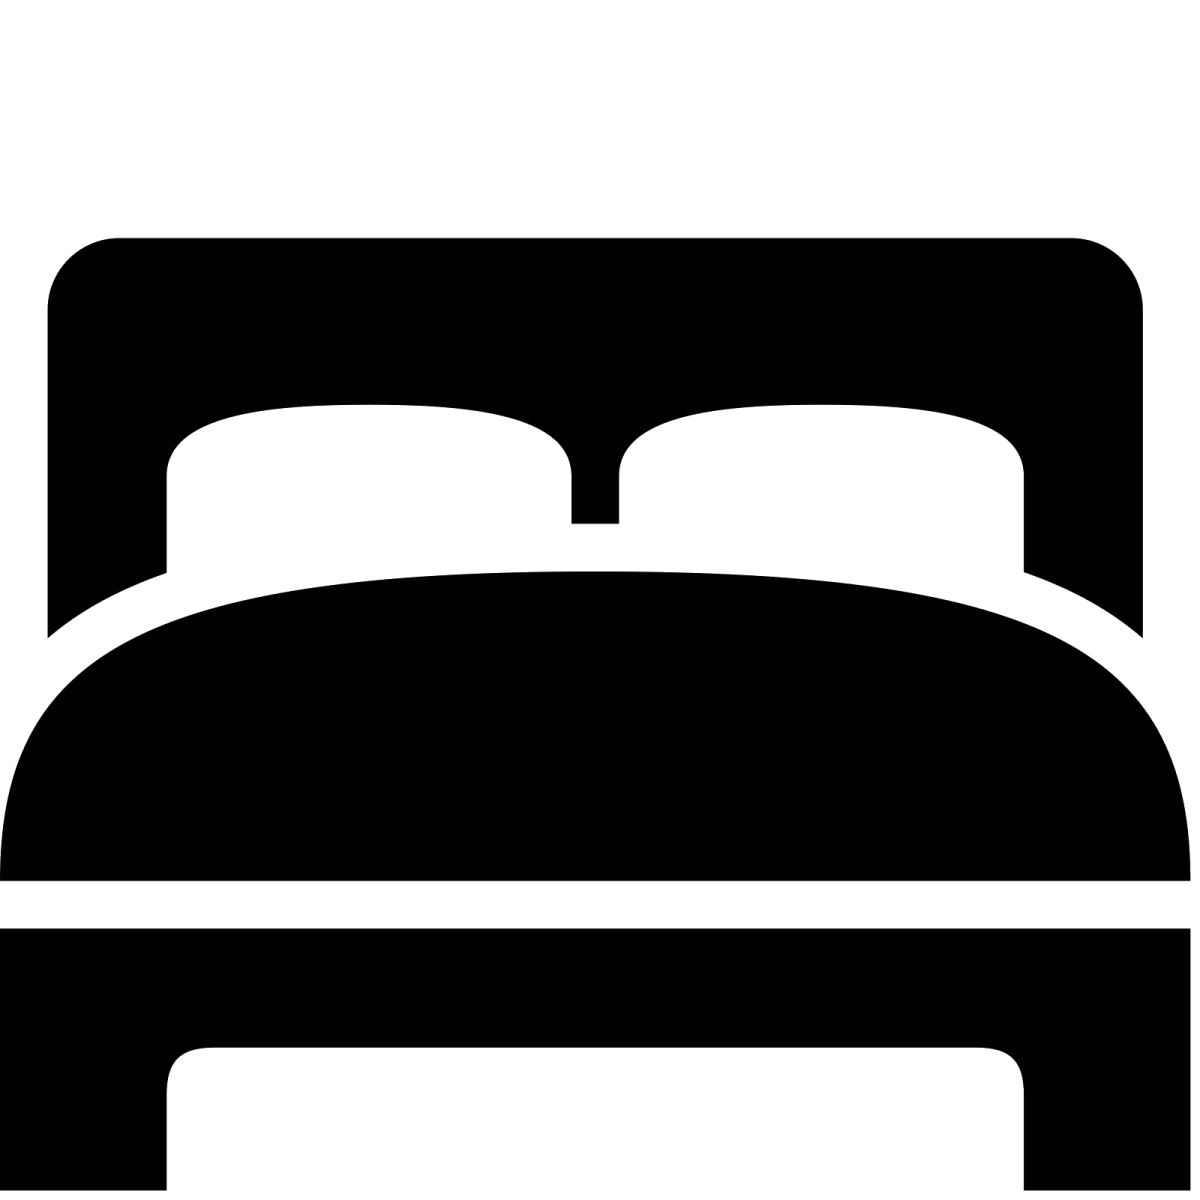 /files/images/bed-icon-png-299677-free-icons-library-bed-icon-png-1600_1600.jpg